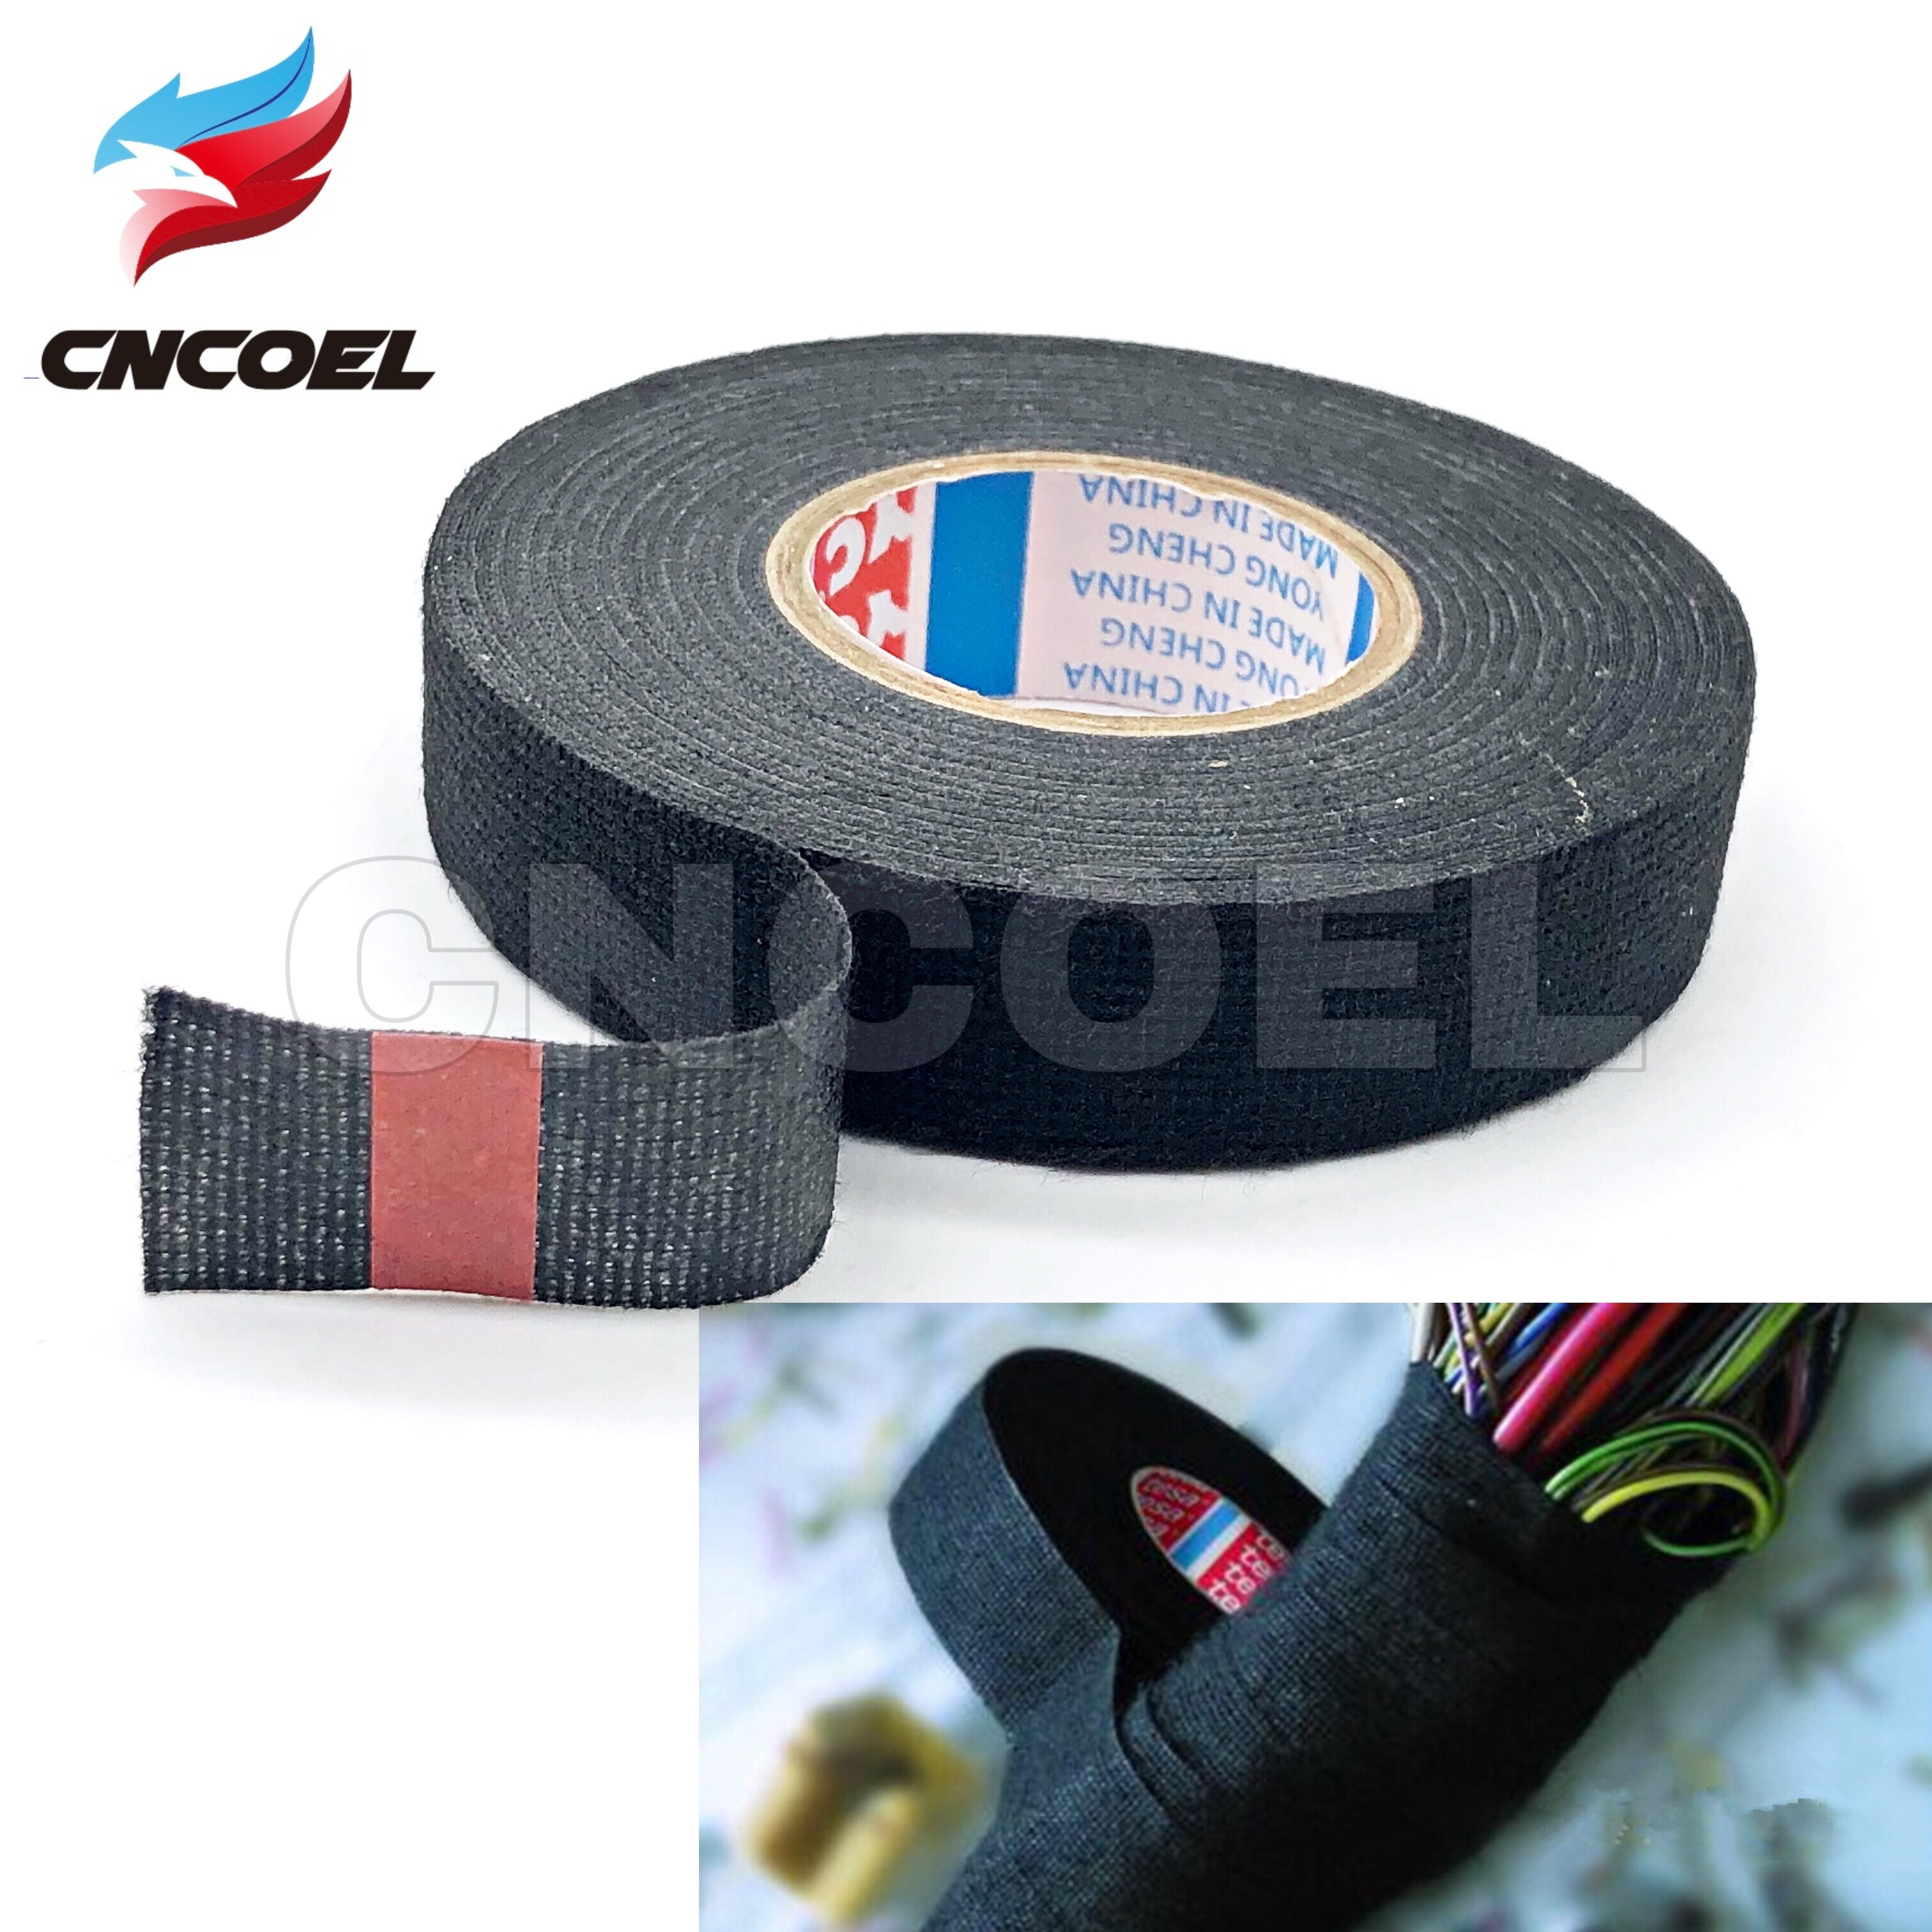 19mmx15M Wiring Harness Cloth Fabric Tape Adhesive Cable Protect For Car Auto